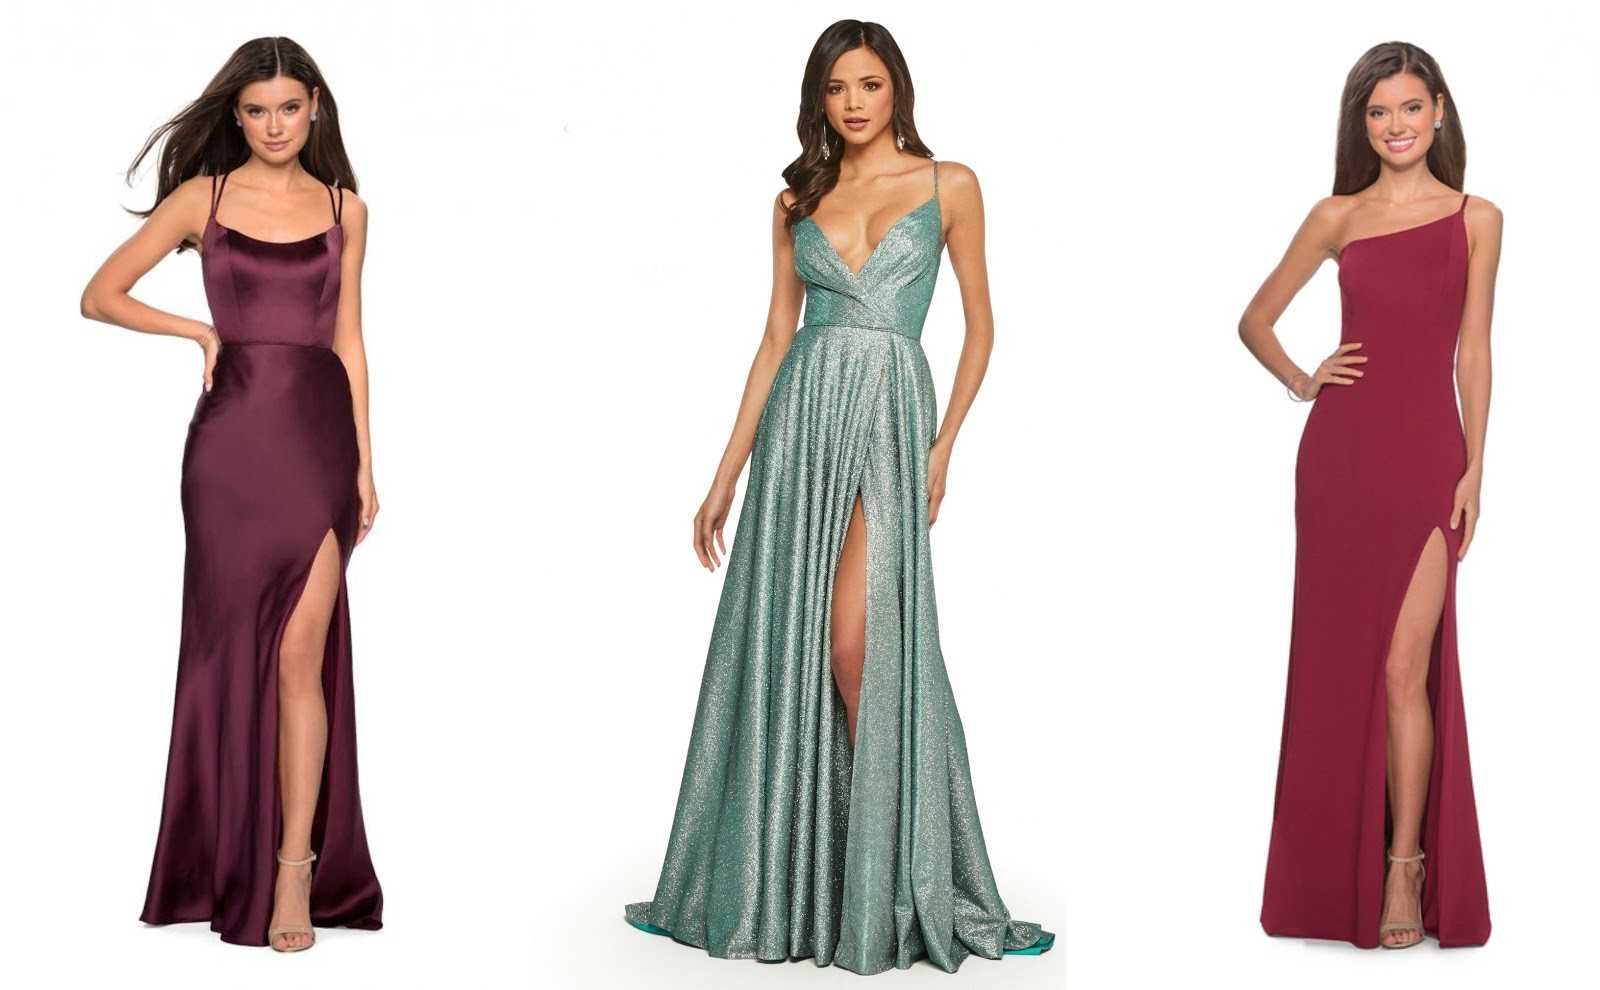 Prom Trends 2020.Prom Dresses Trends To Keep In Mind For 2020 Kate Cc